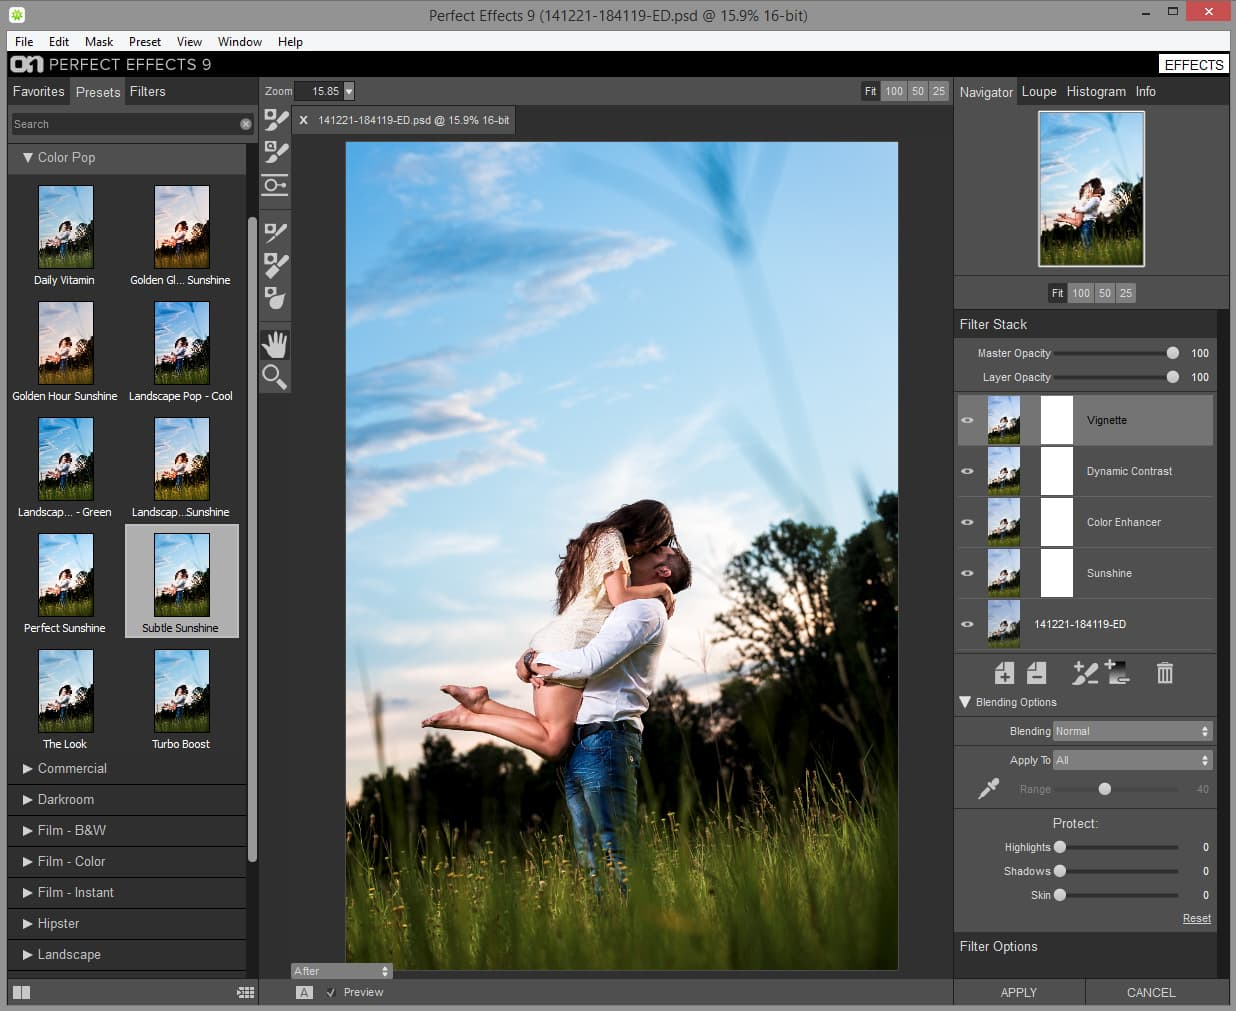 Perfect effects 9 by on1 software free to download via Free photo software